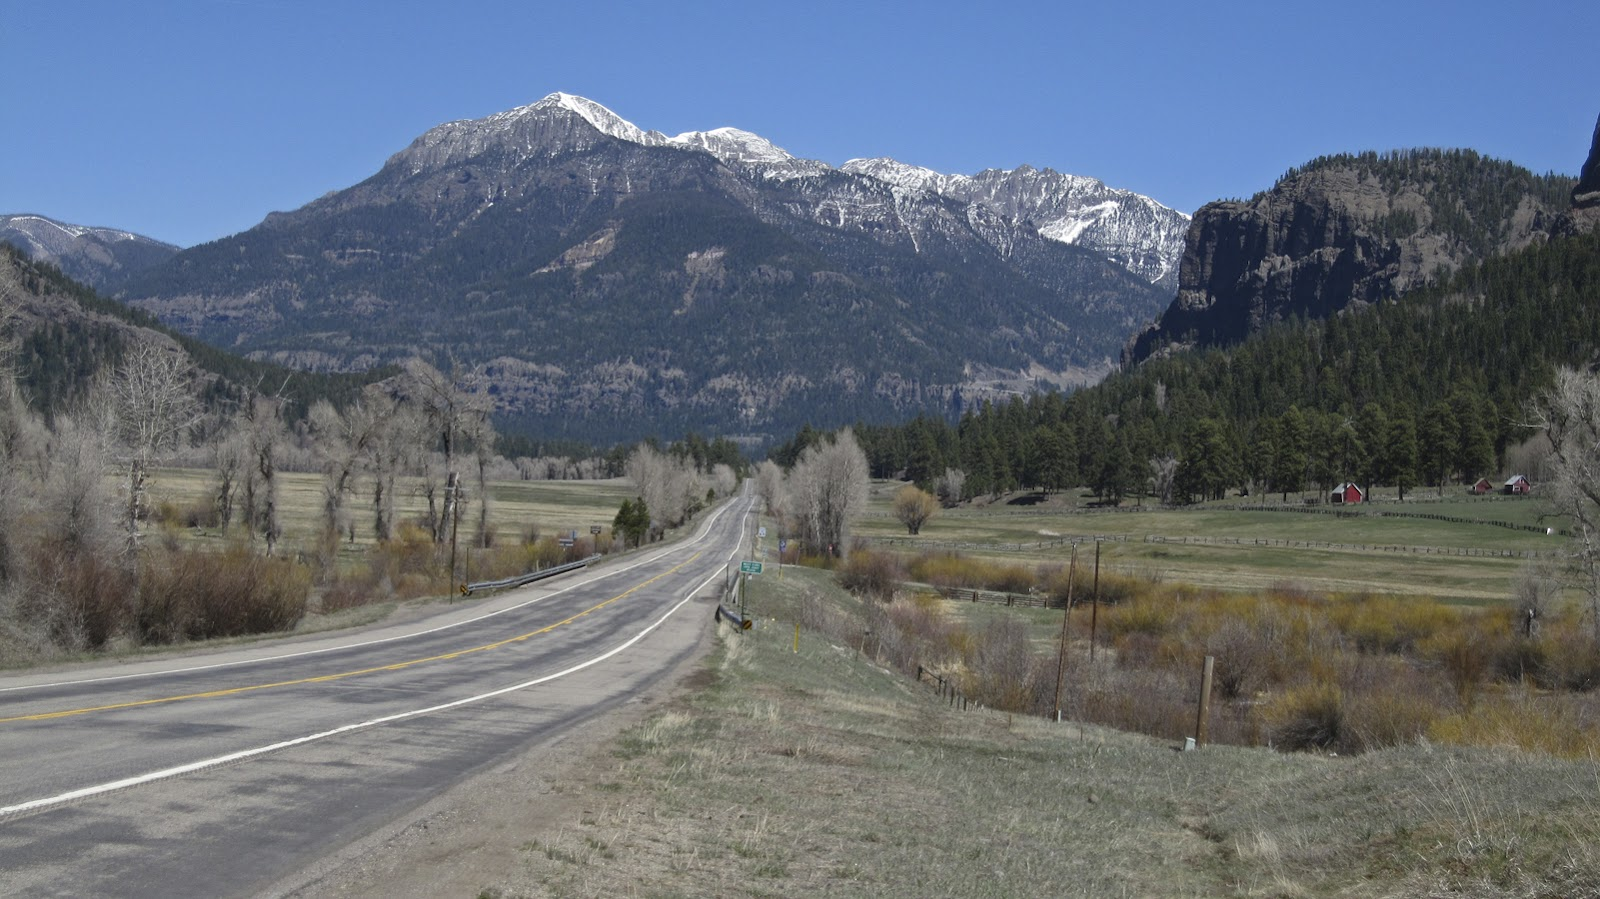 pagosa springs guys 2016-11-6  welcome to pagosa springs, colorado we are located in southwest colorado, surrounded by the incredible beauty of the san juan and rocky mountain ranges, at an elevation of 7500 feet.